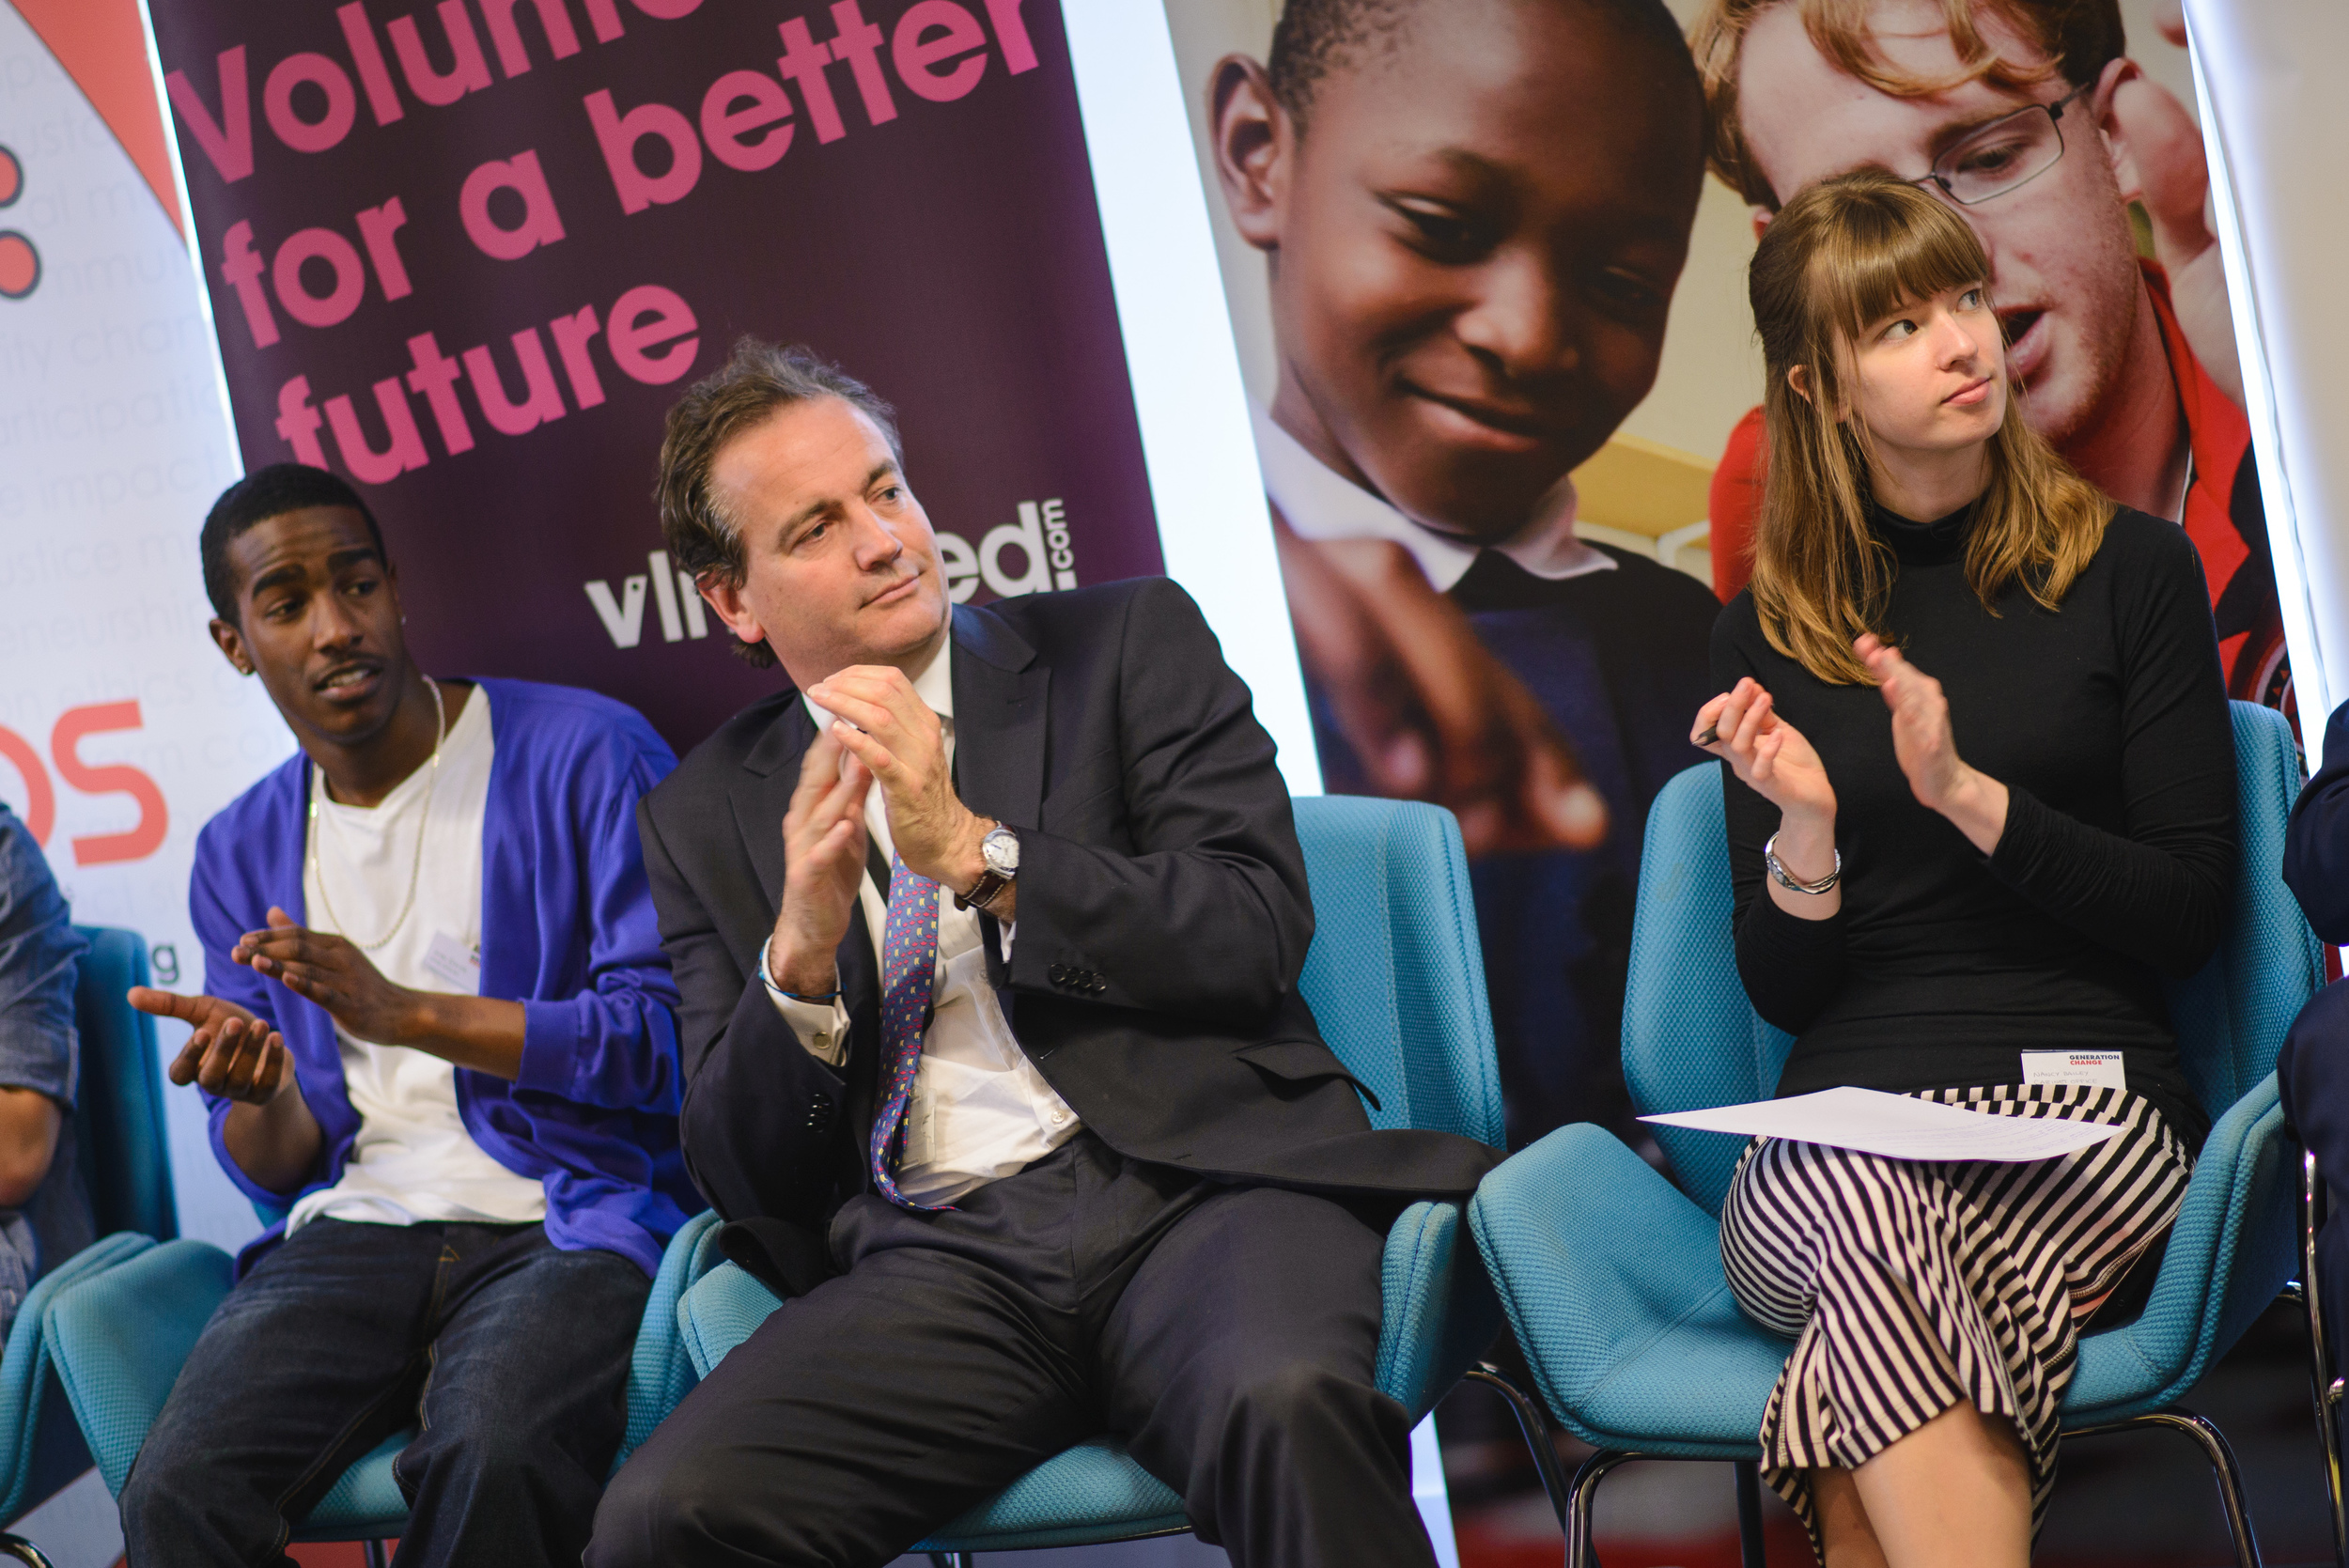 Left to right; Joel Davis (Tutors united), Nick Hurd (Minister Civil Society), Nancy Bailey (Cabinet office).